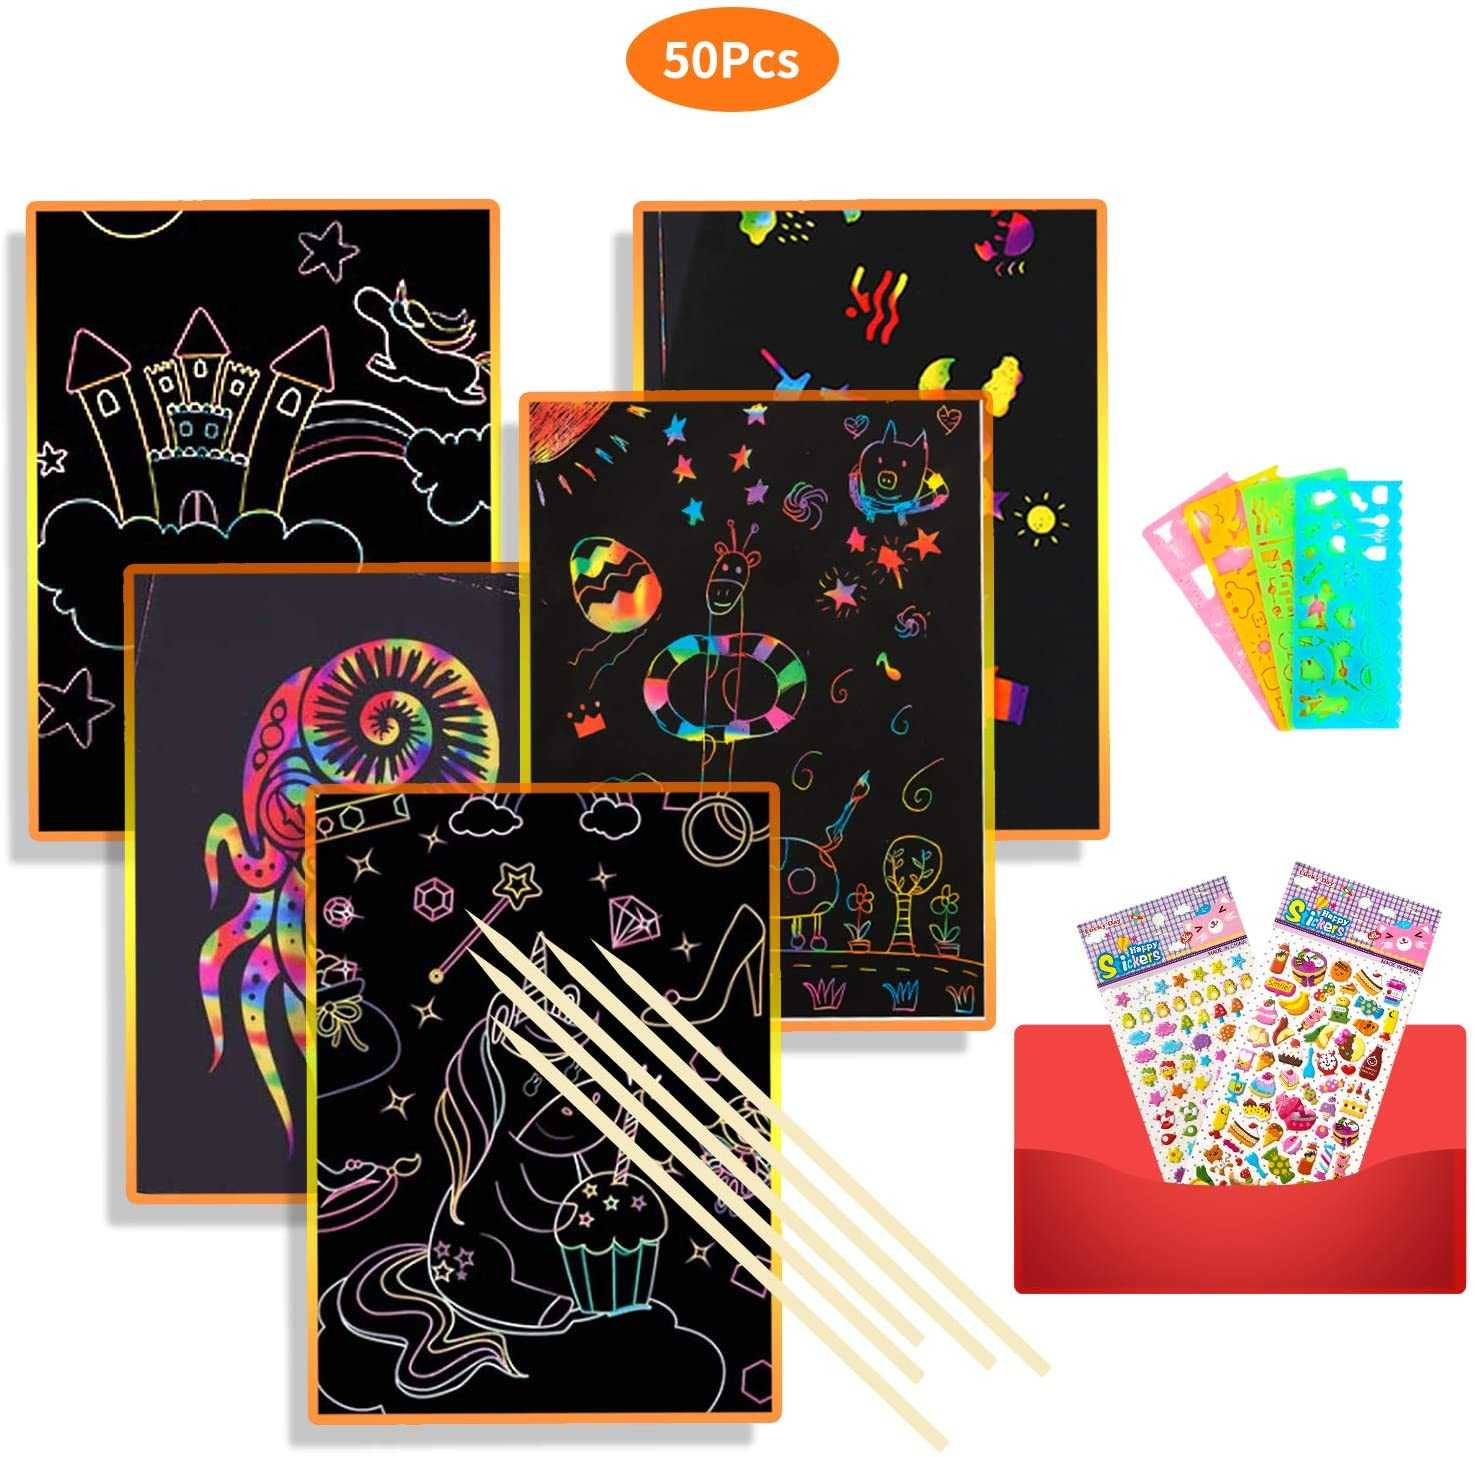 OtRainbow Scratch Art Set, 50 Big Pcs Rainbow Magic Scratch Paper for Kids Black Scratch Off Art Crafts Notes Boards Sheet with 5 Wooden Stylus for Festival Party Game Christmas Birthday Gift